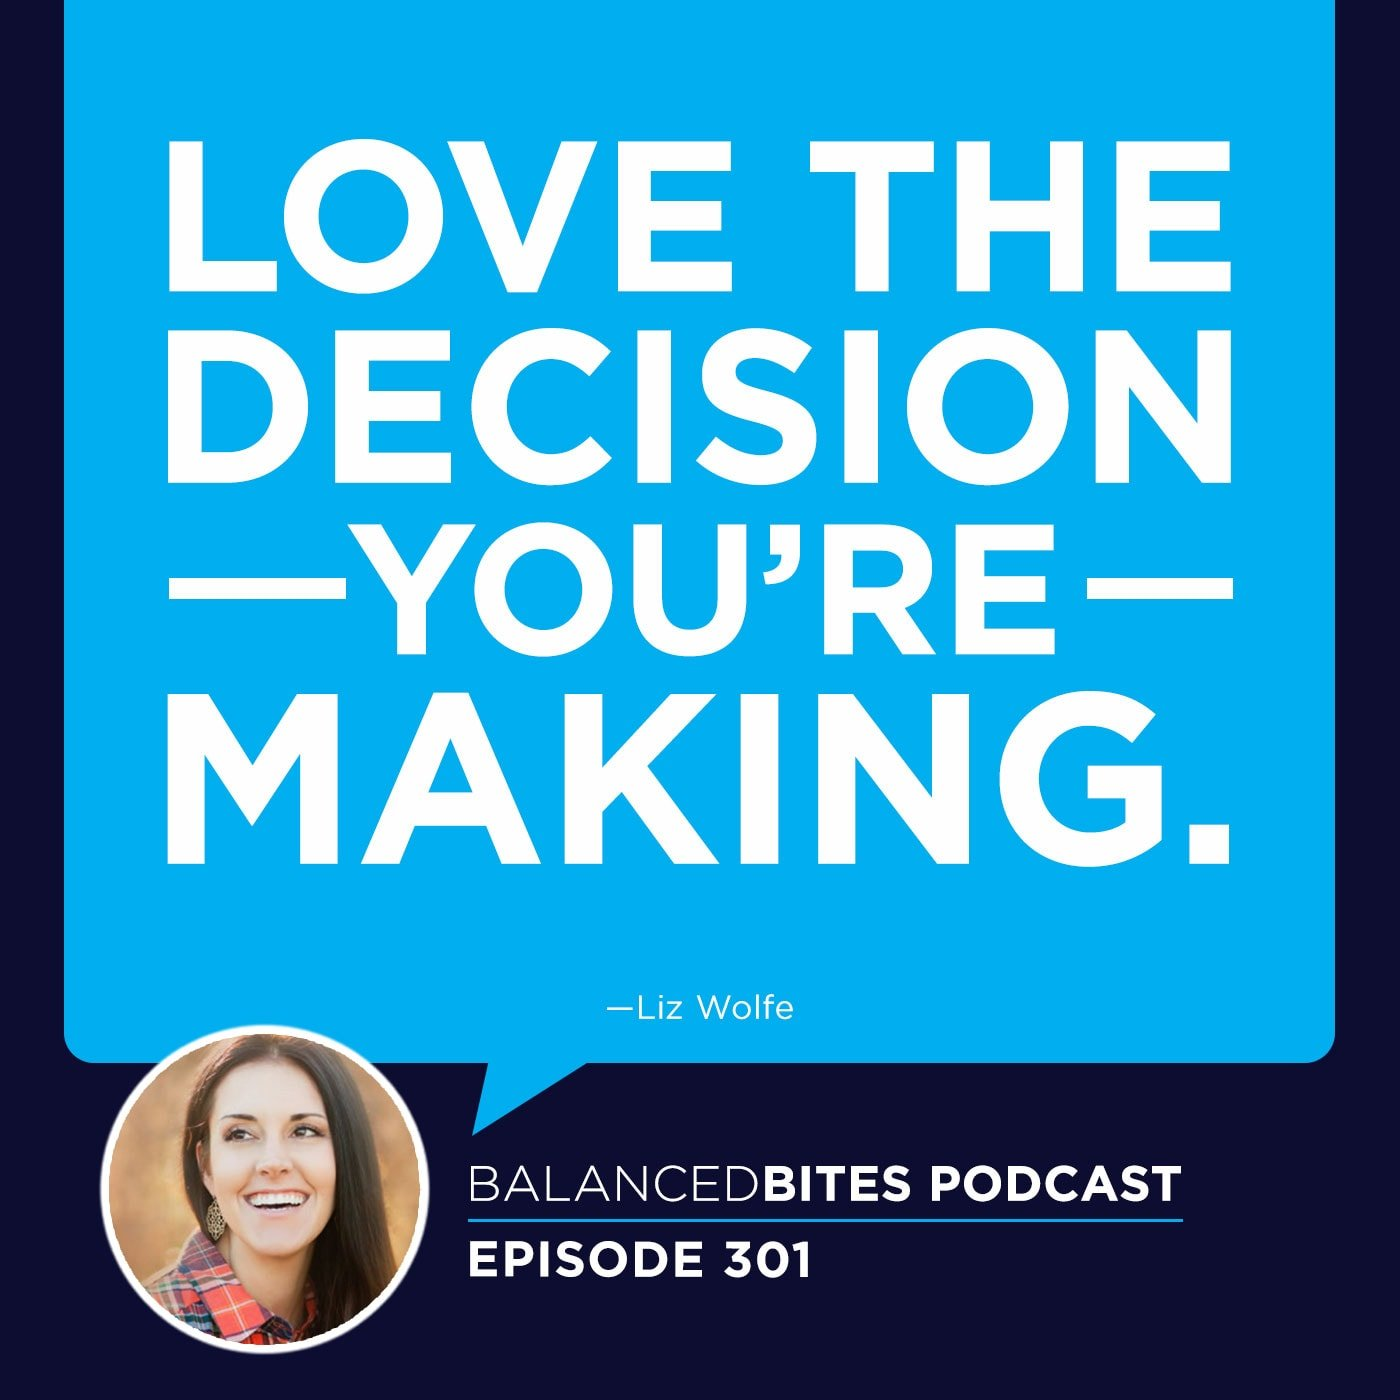 Diane Sanfilippo & Liz Wolfe | Balanced Bites Podcast | The Evolution of Our Thinking (and Our Podcast)